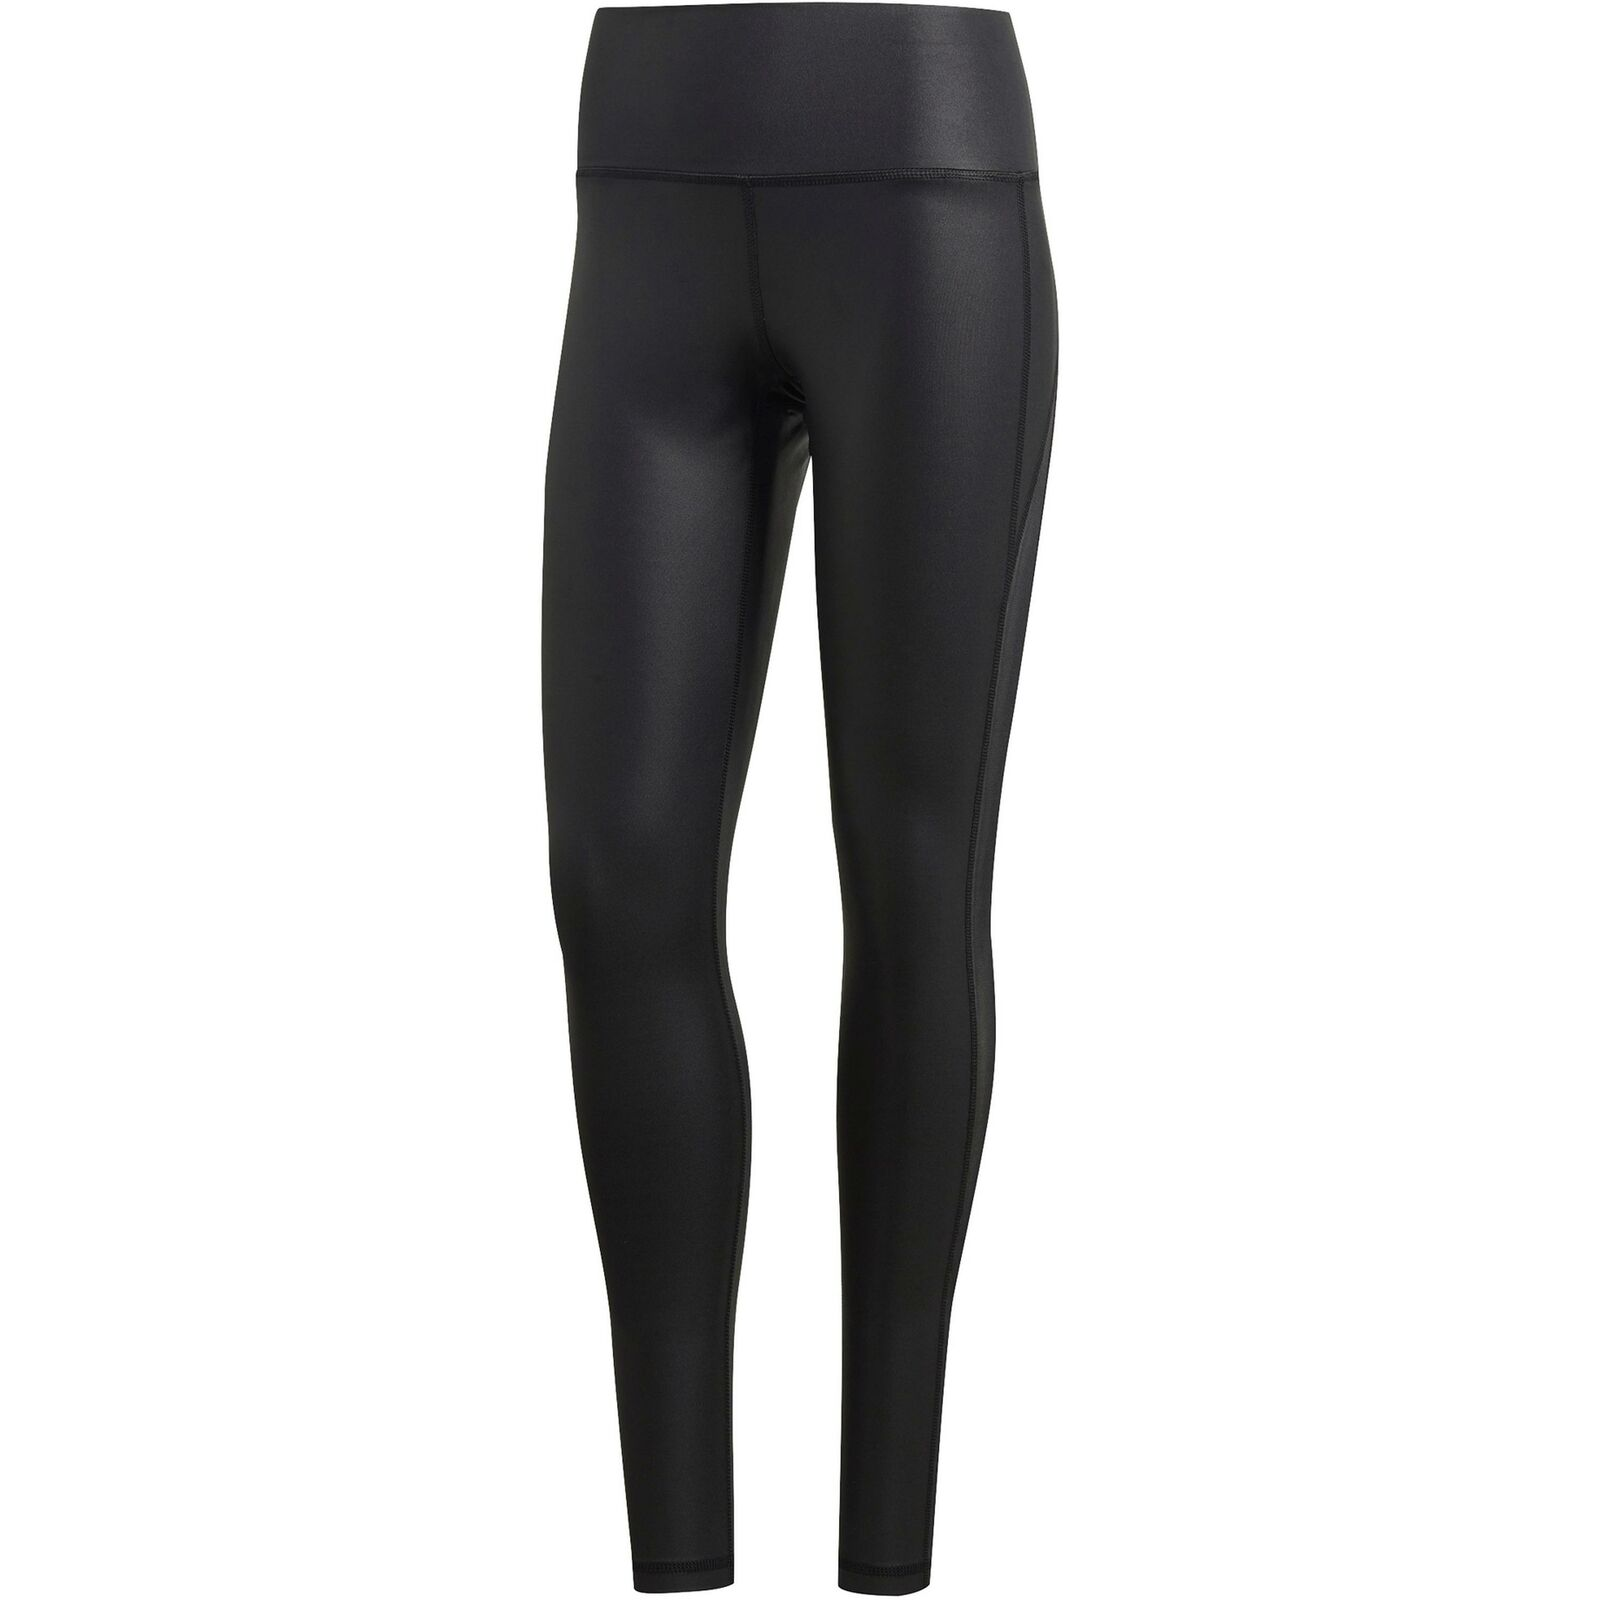 Adidas Performance Tights Believe This Highrise DaSie Training Laufhose